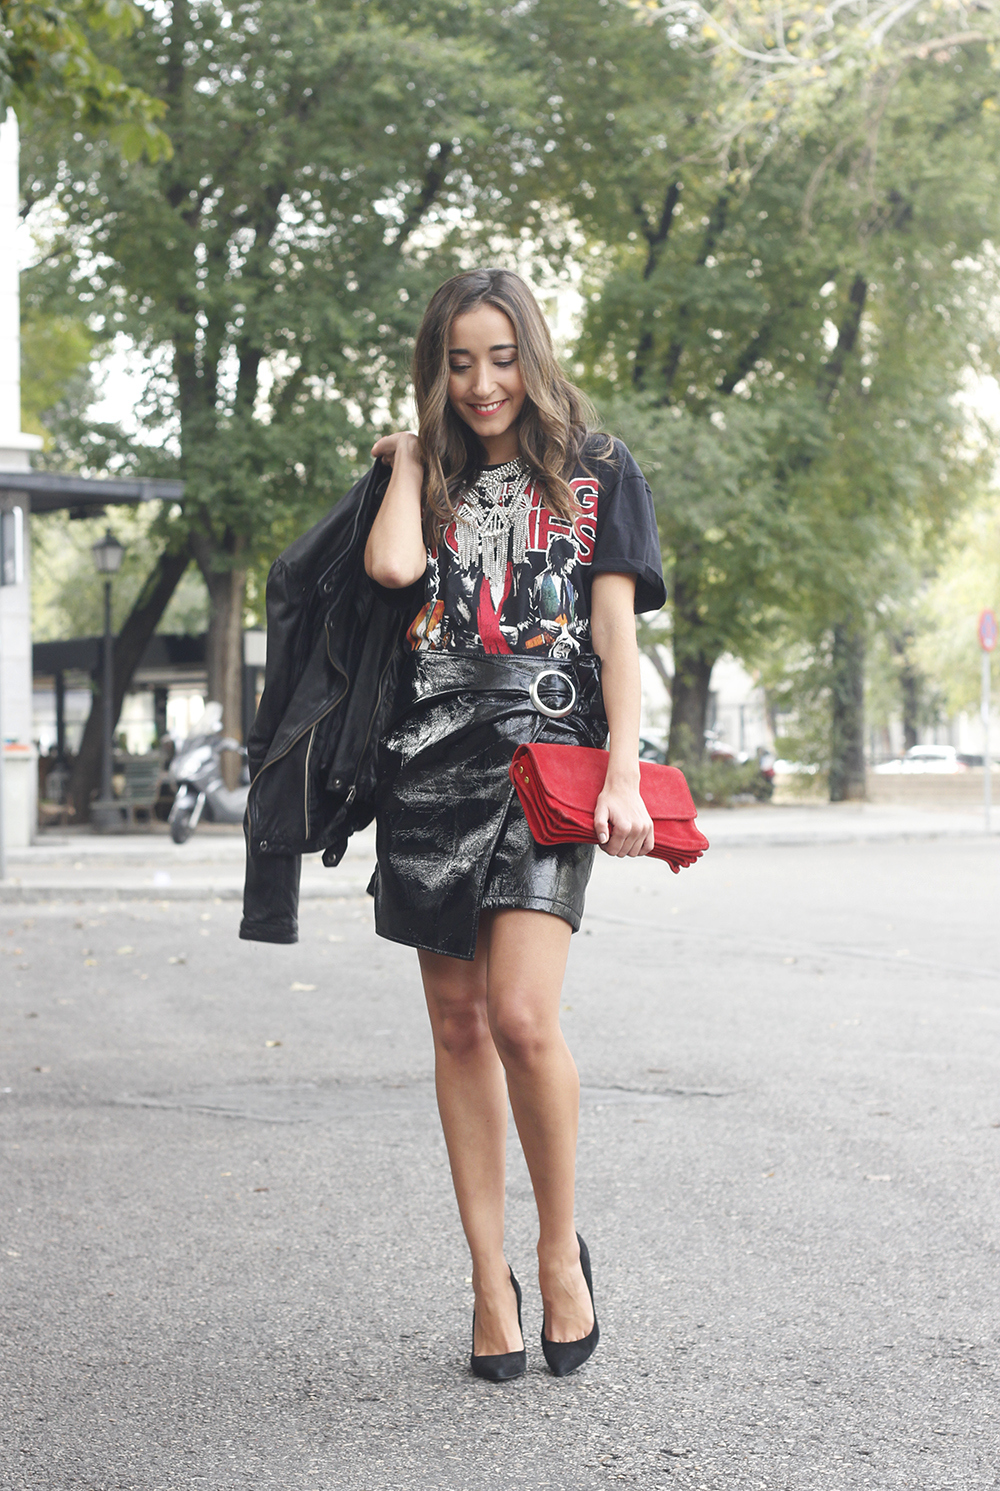 patent leather skirt t-shirt necklace heels leather jacket outfit style fashion01